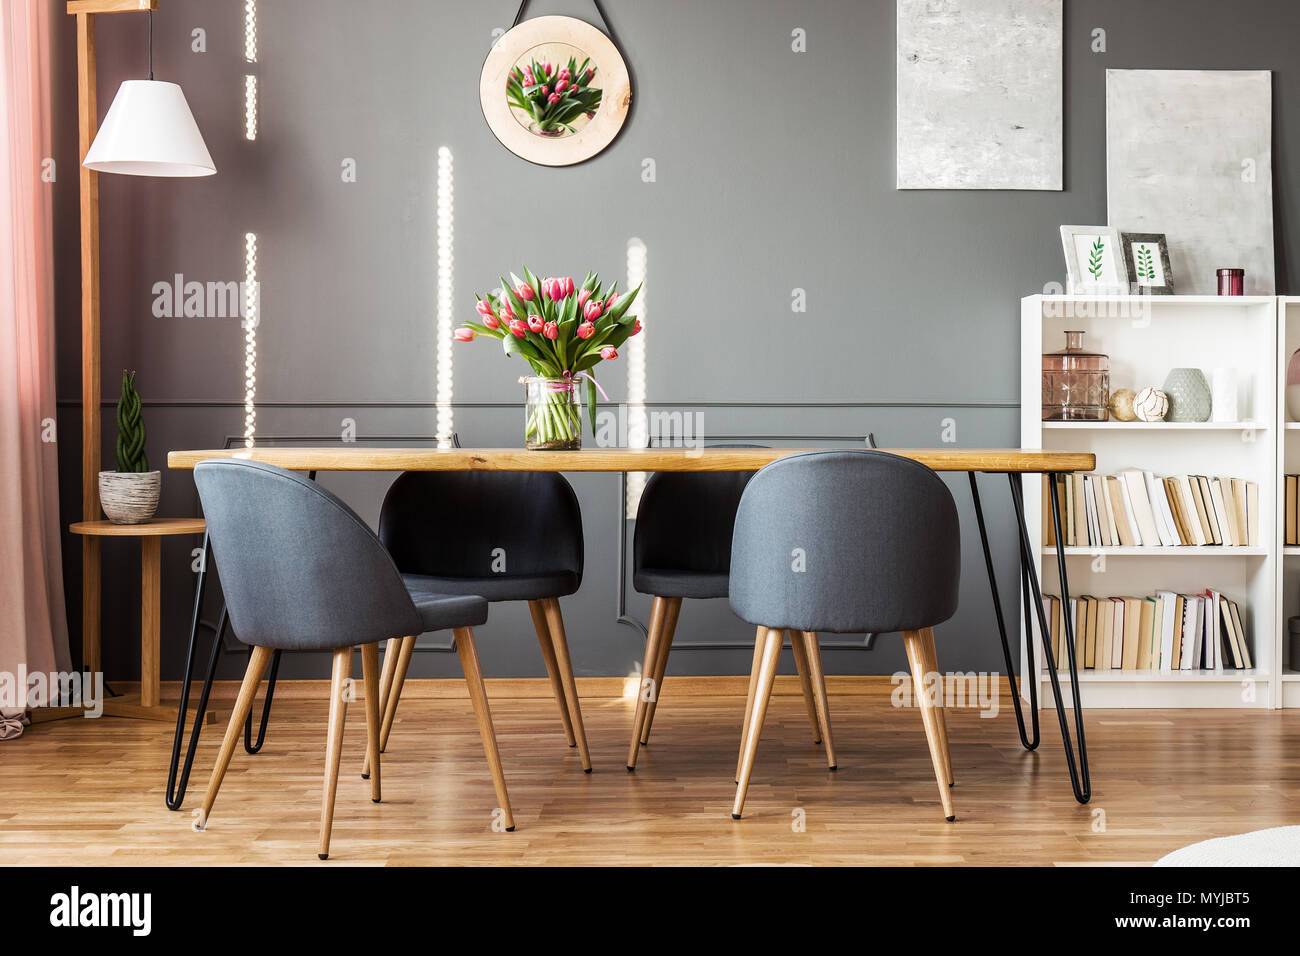 Wooden Dining Table Grey Chairs Bookshelf And Pink Tulips In Dining Room Interior Stock Photo Alamy